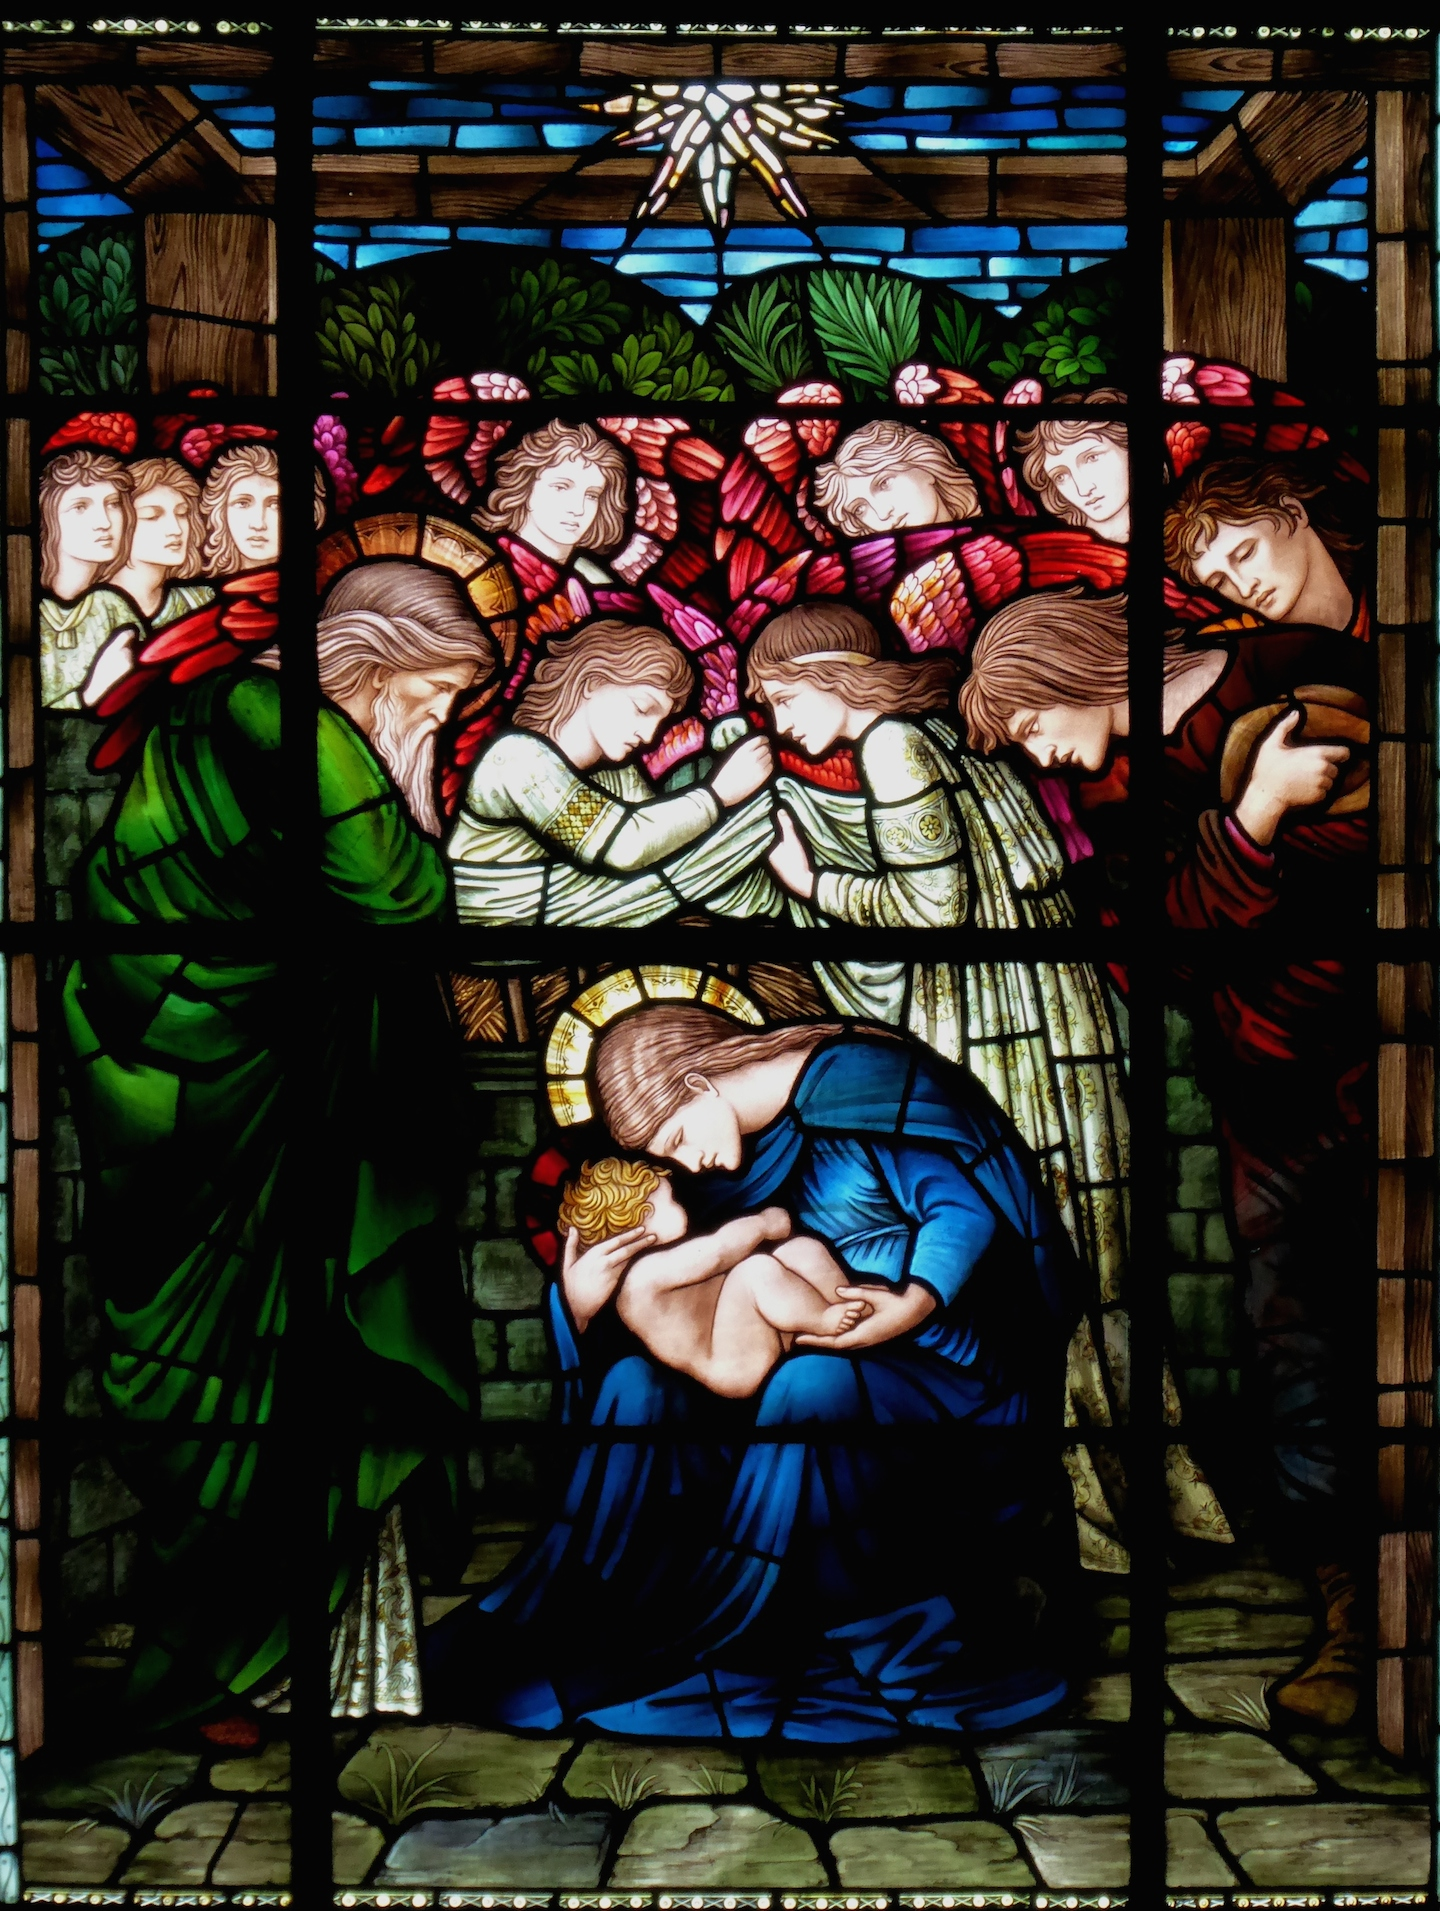 Winchester Cathedral, Burne Jones, The Nativity, Adoration of the Shepherds